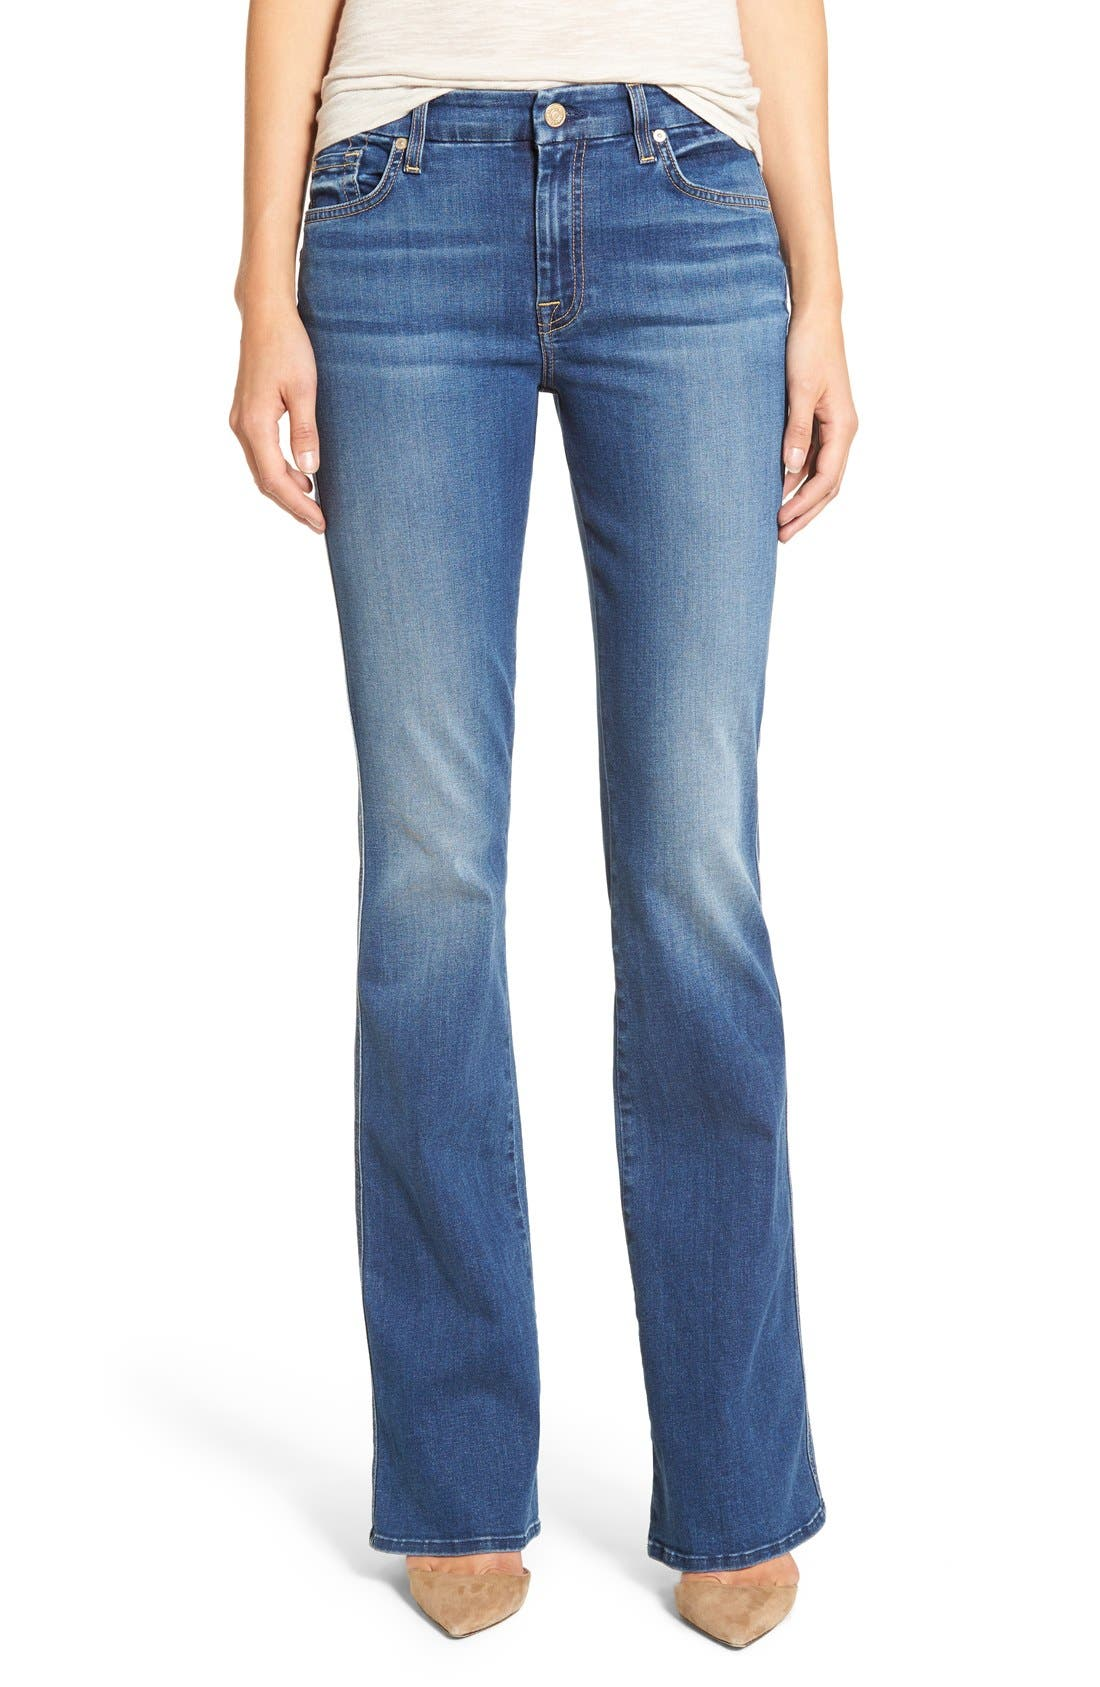 'b(air) - A Pocket' Flare Jeans,                             Main thumbnail 1, color,                             Reign